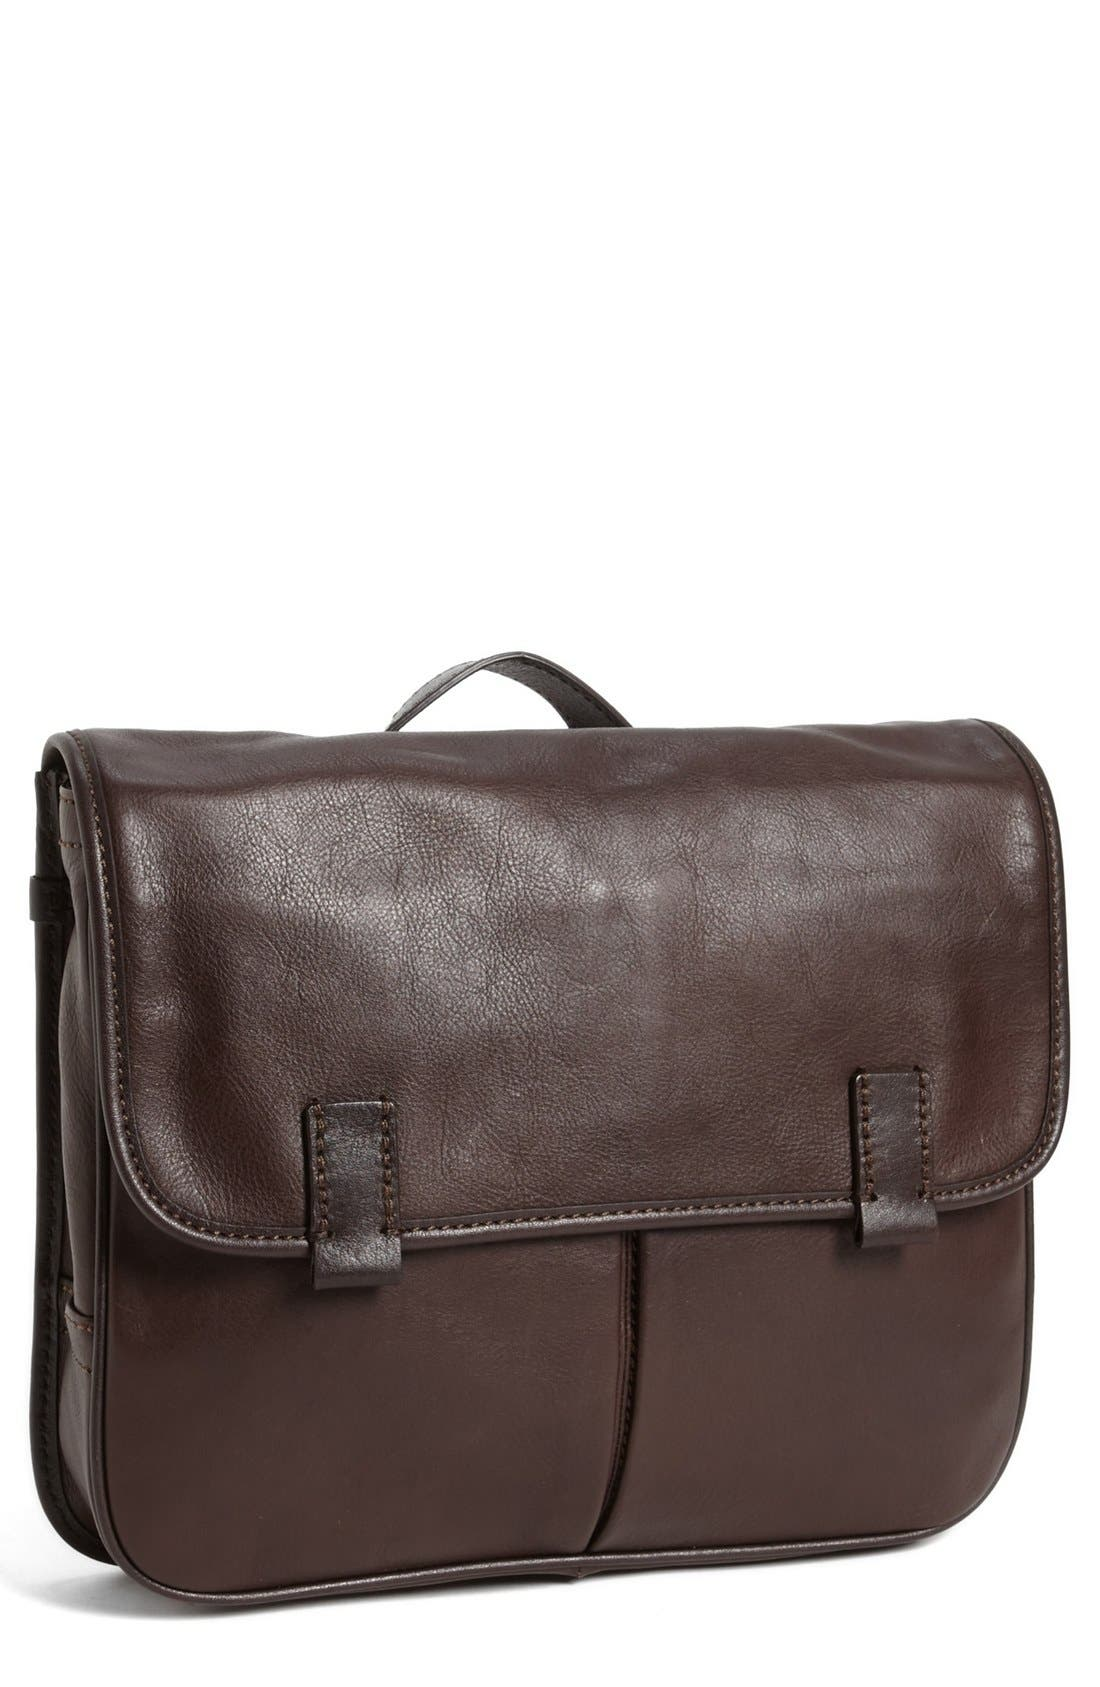 Main Image - Fossil 'Mercer EW' Leather City Bag